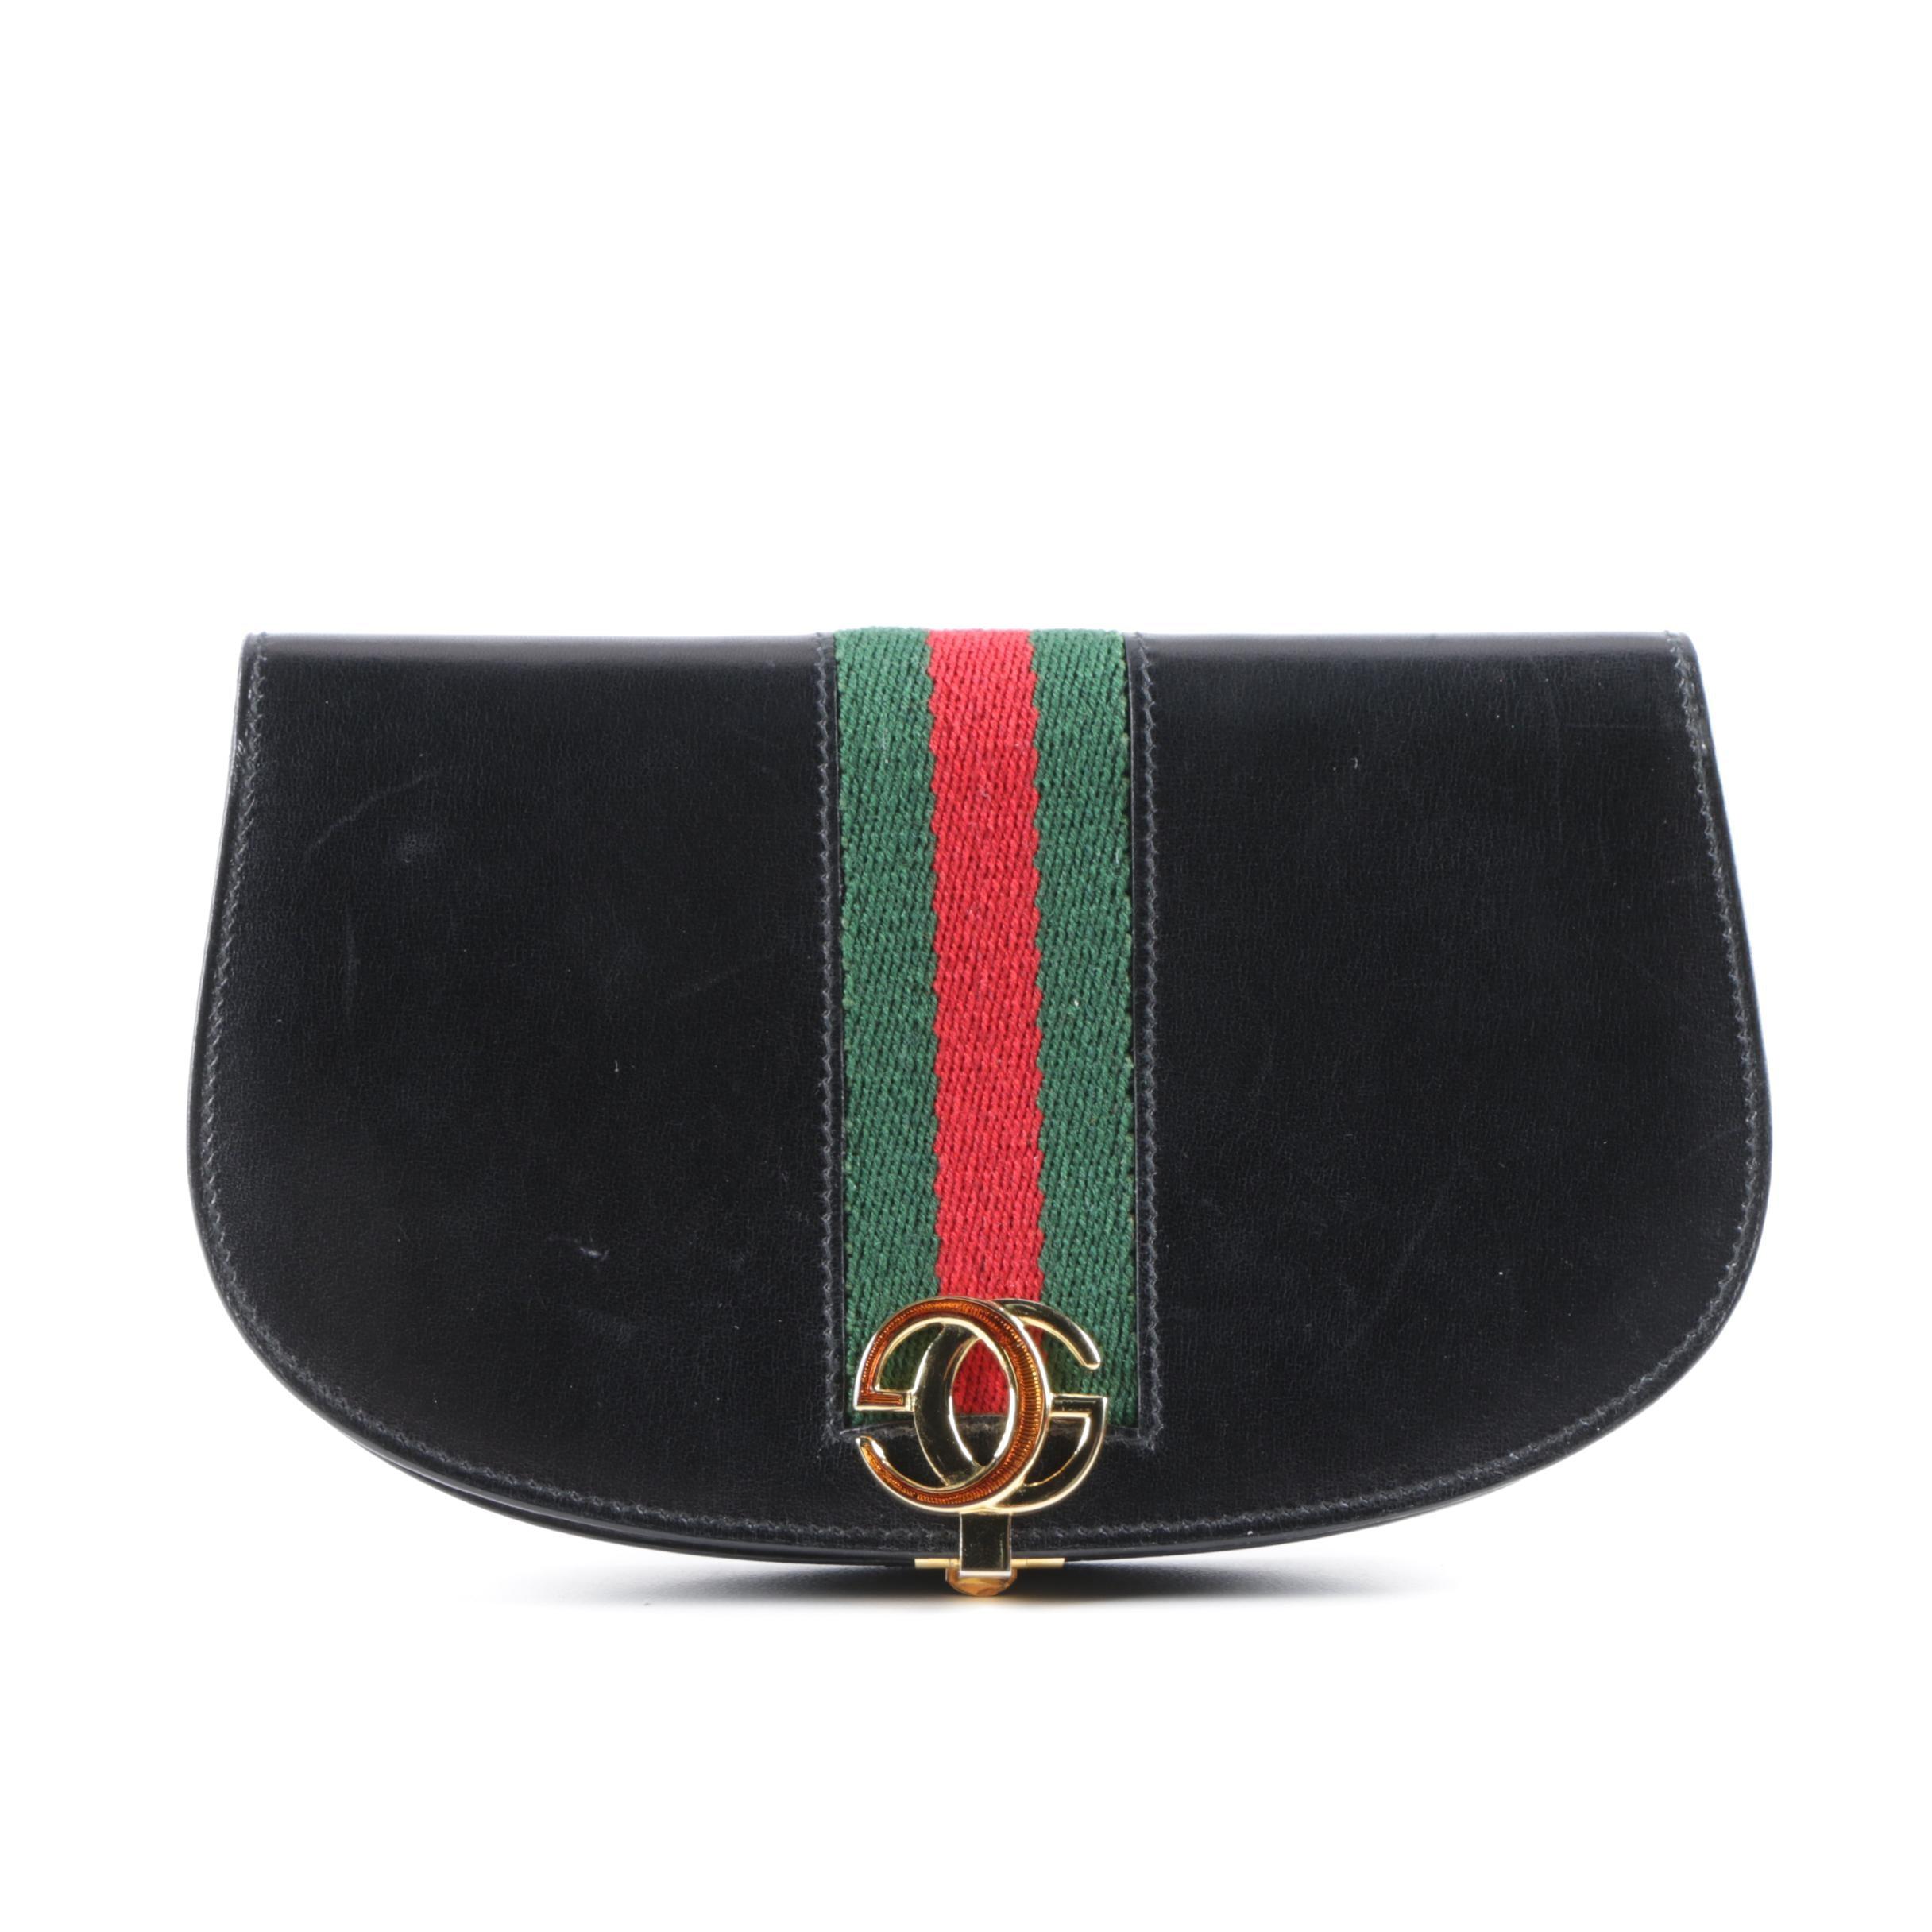 Vintage Gucci Web Stripe Black Leather Saddle Clutch